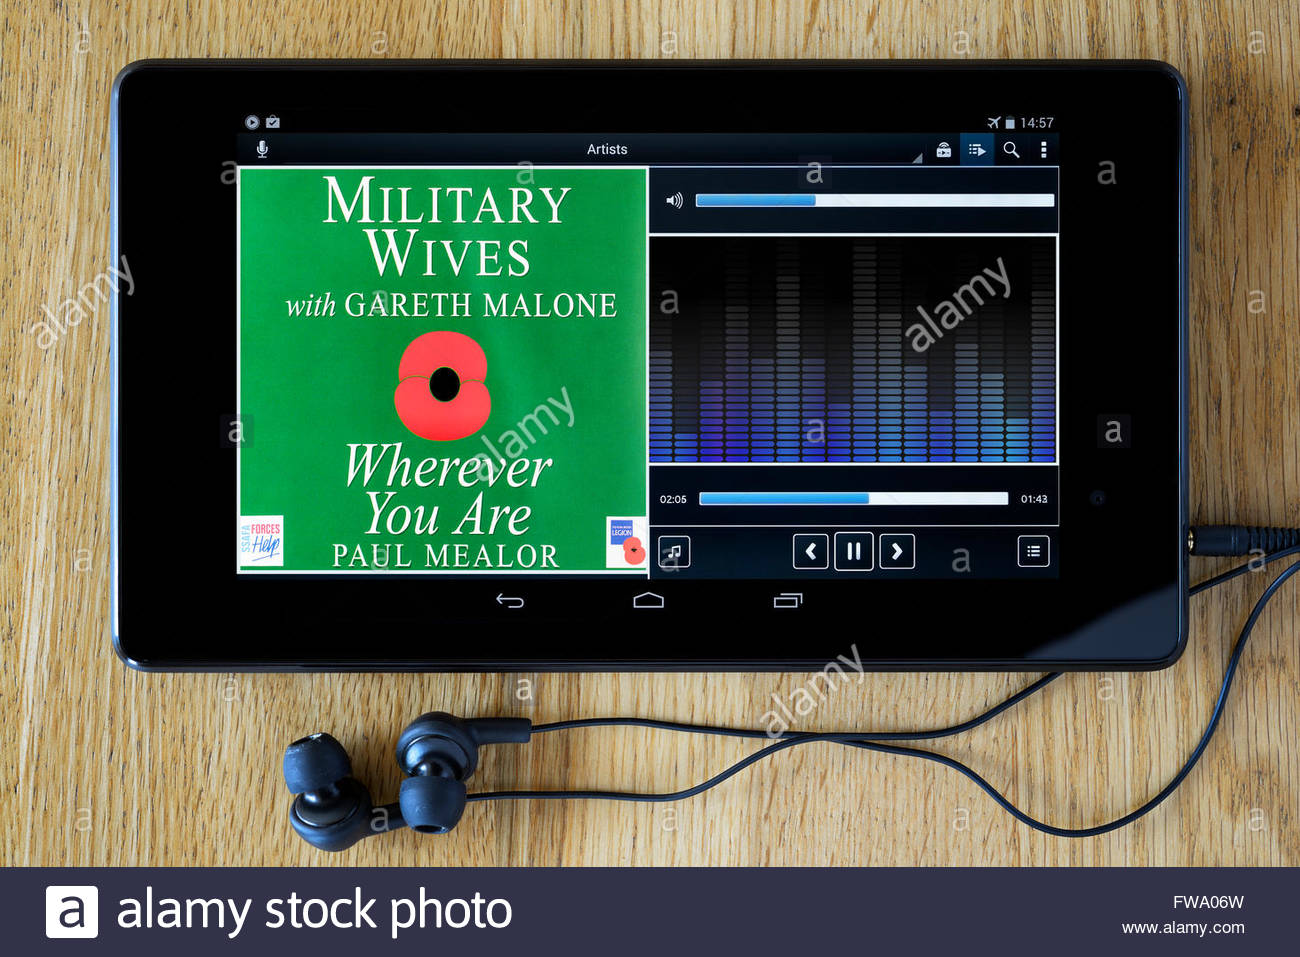 Military Wives 2011 single Wherever You Are, MP3 album art on PC tablet, England - Stock Image